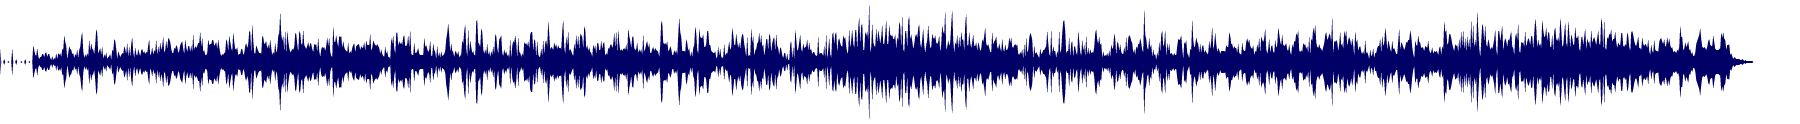 waveform of track #75457